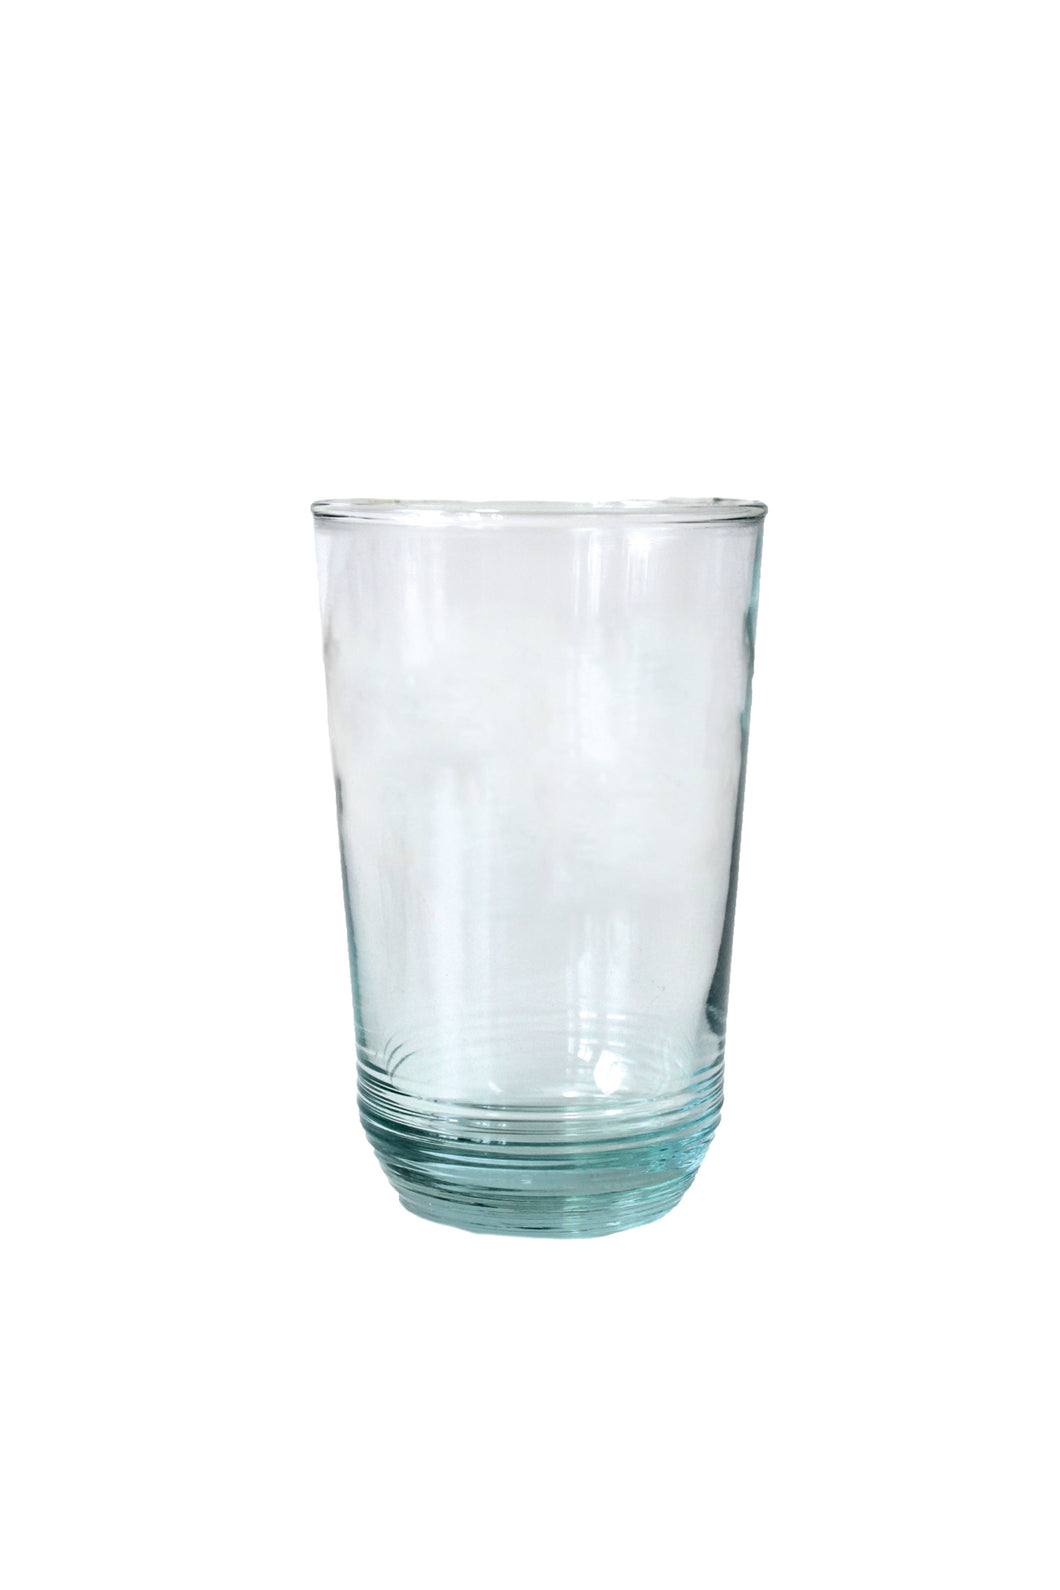 Ripple Recycled Glass Tumblers